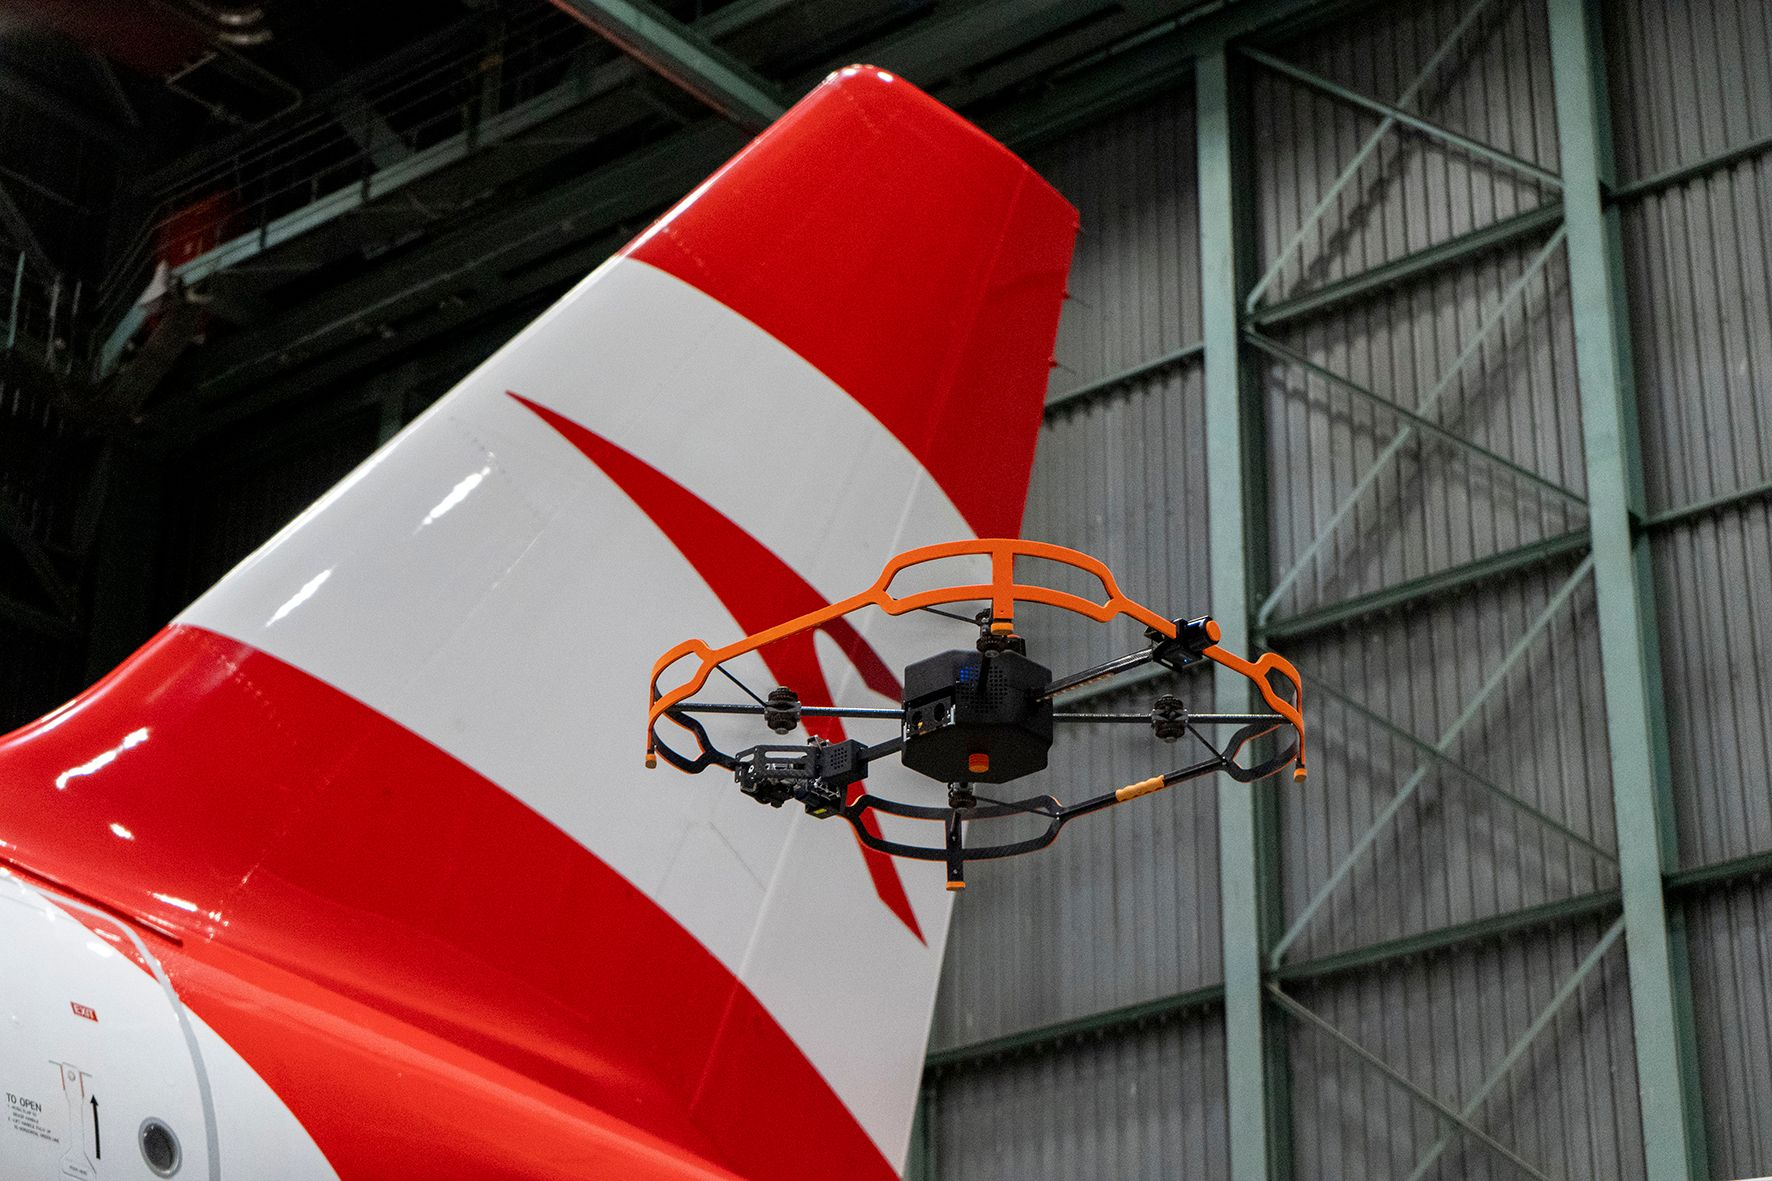 Kết quả hình ảnh cho Austrian Airlines Relies on Innovative Drone Technology for Aircraft Inspections images